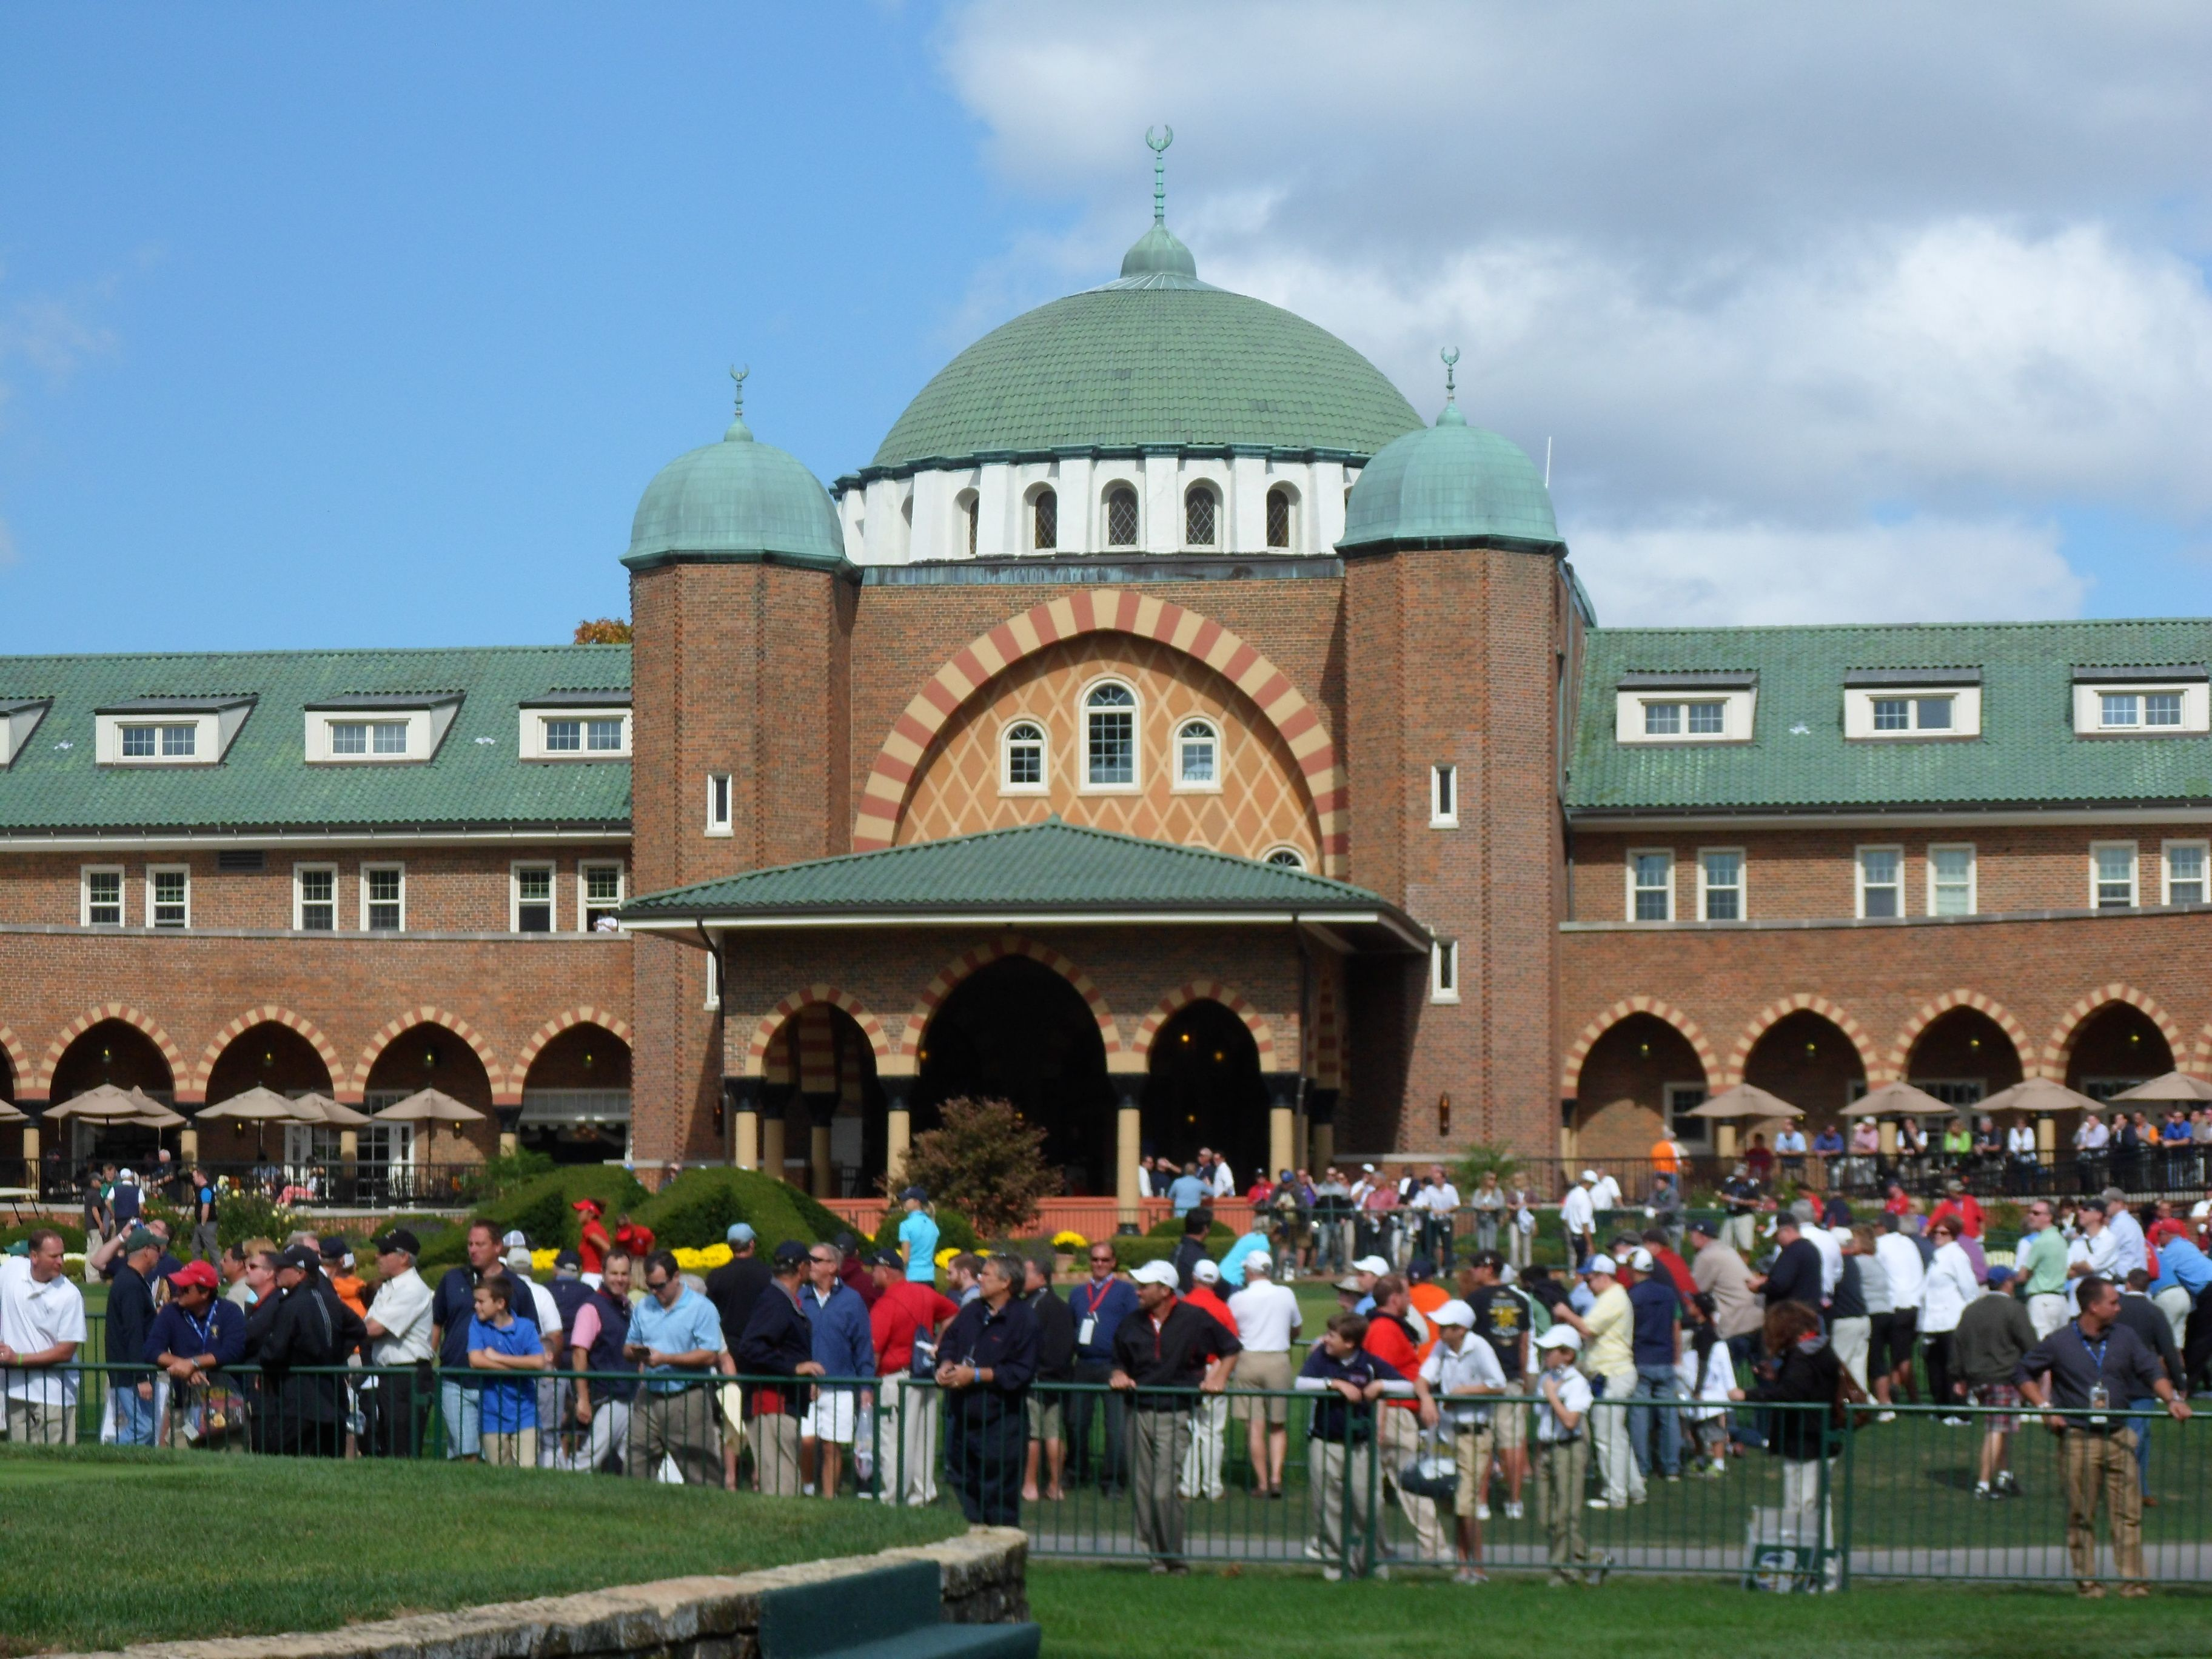 The Clubhouse at Medinah Country Club, Medinah Illinois (near the City of Chicago).  I got tickets to be on the grounds at Wednesday's practice round.  Great experience to watch history as it's being created!!